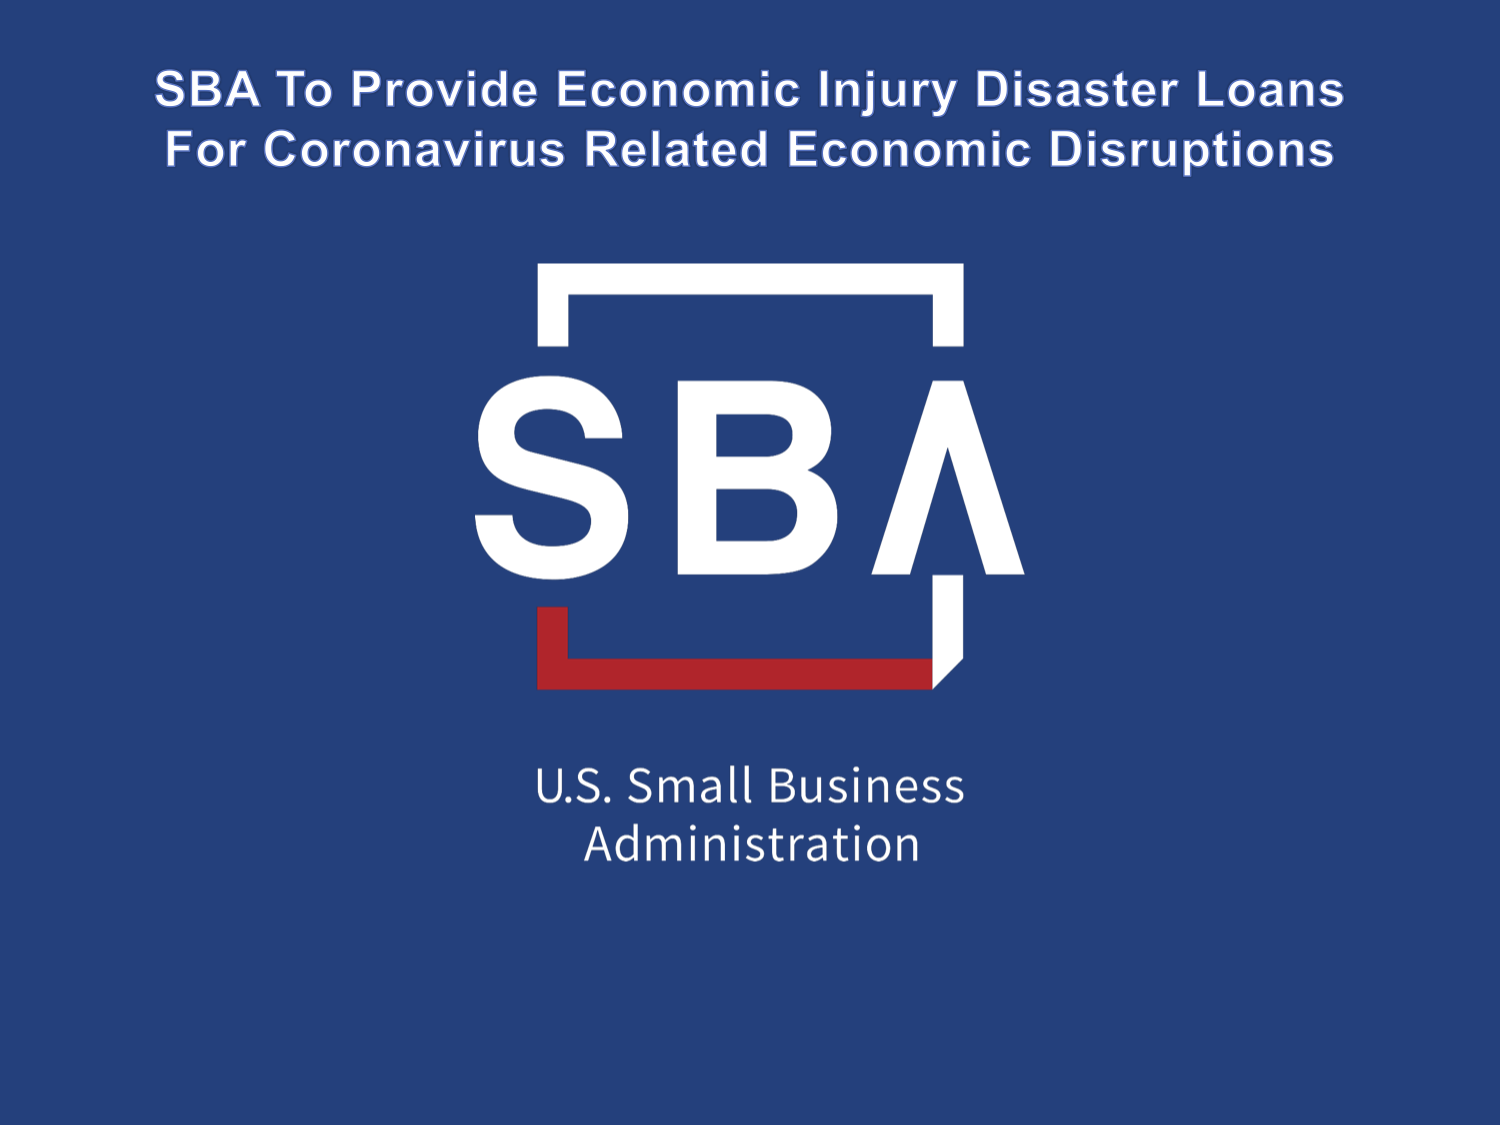 Small Business Administration Economic Injury Disaster Loans for COVID-19